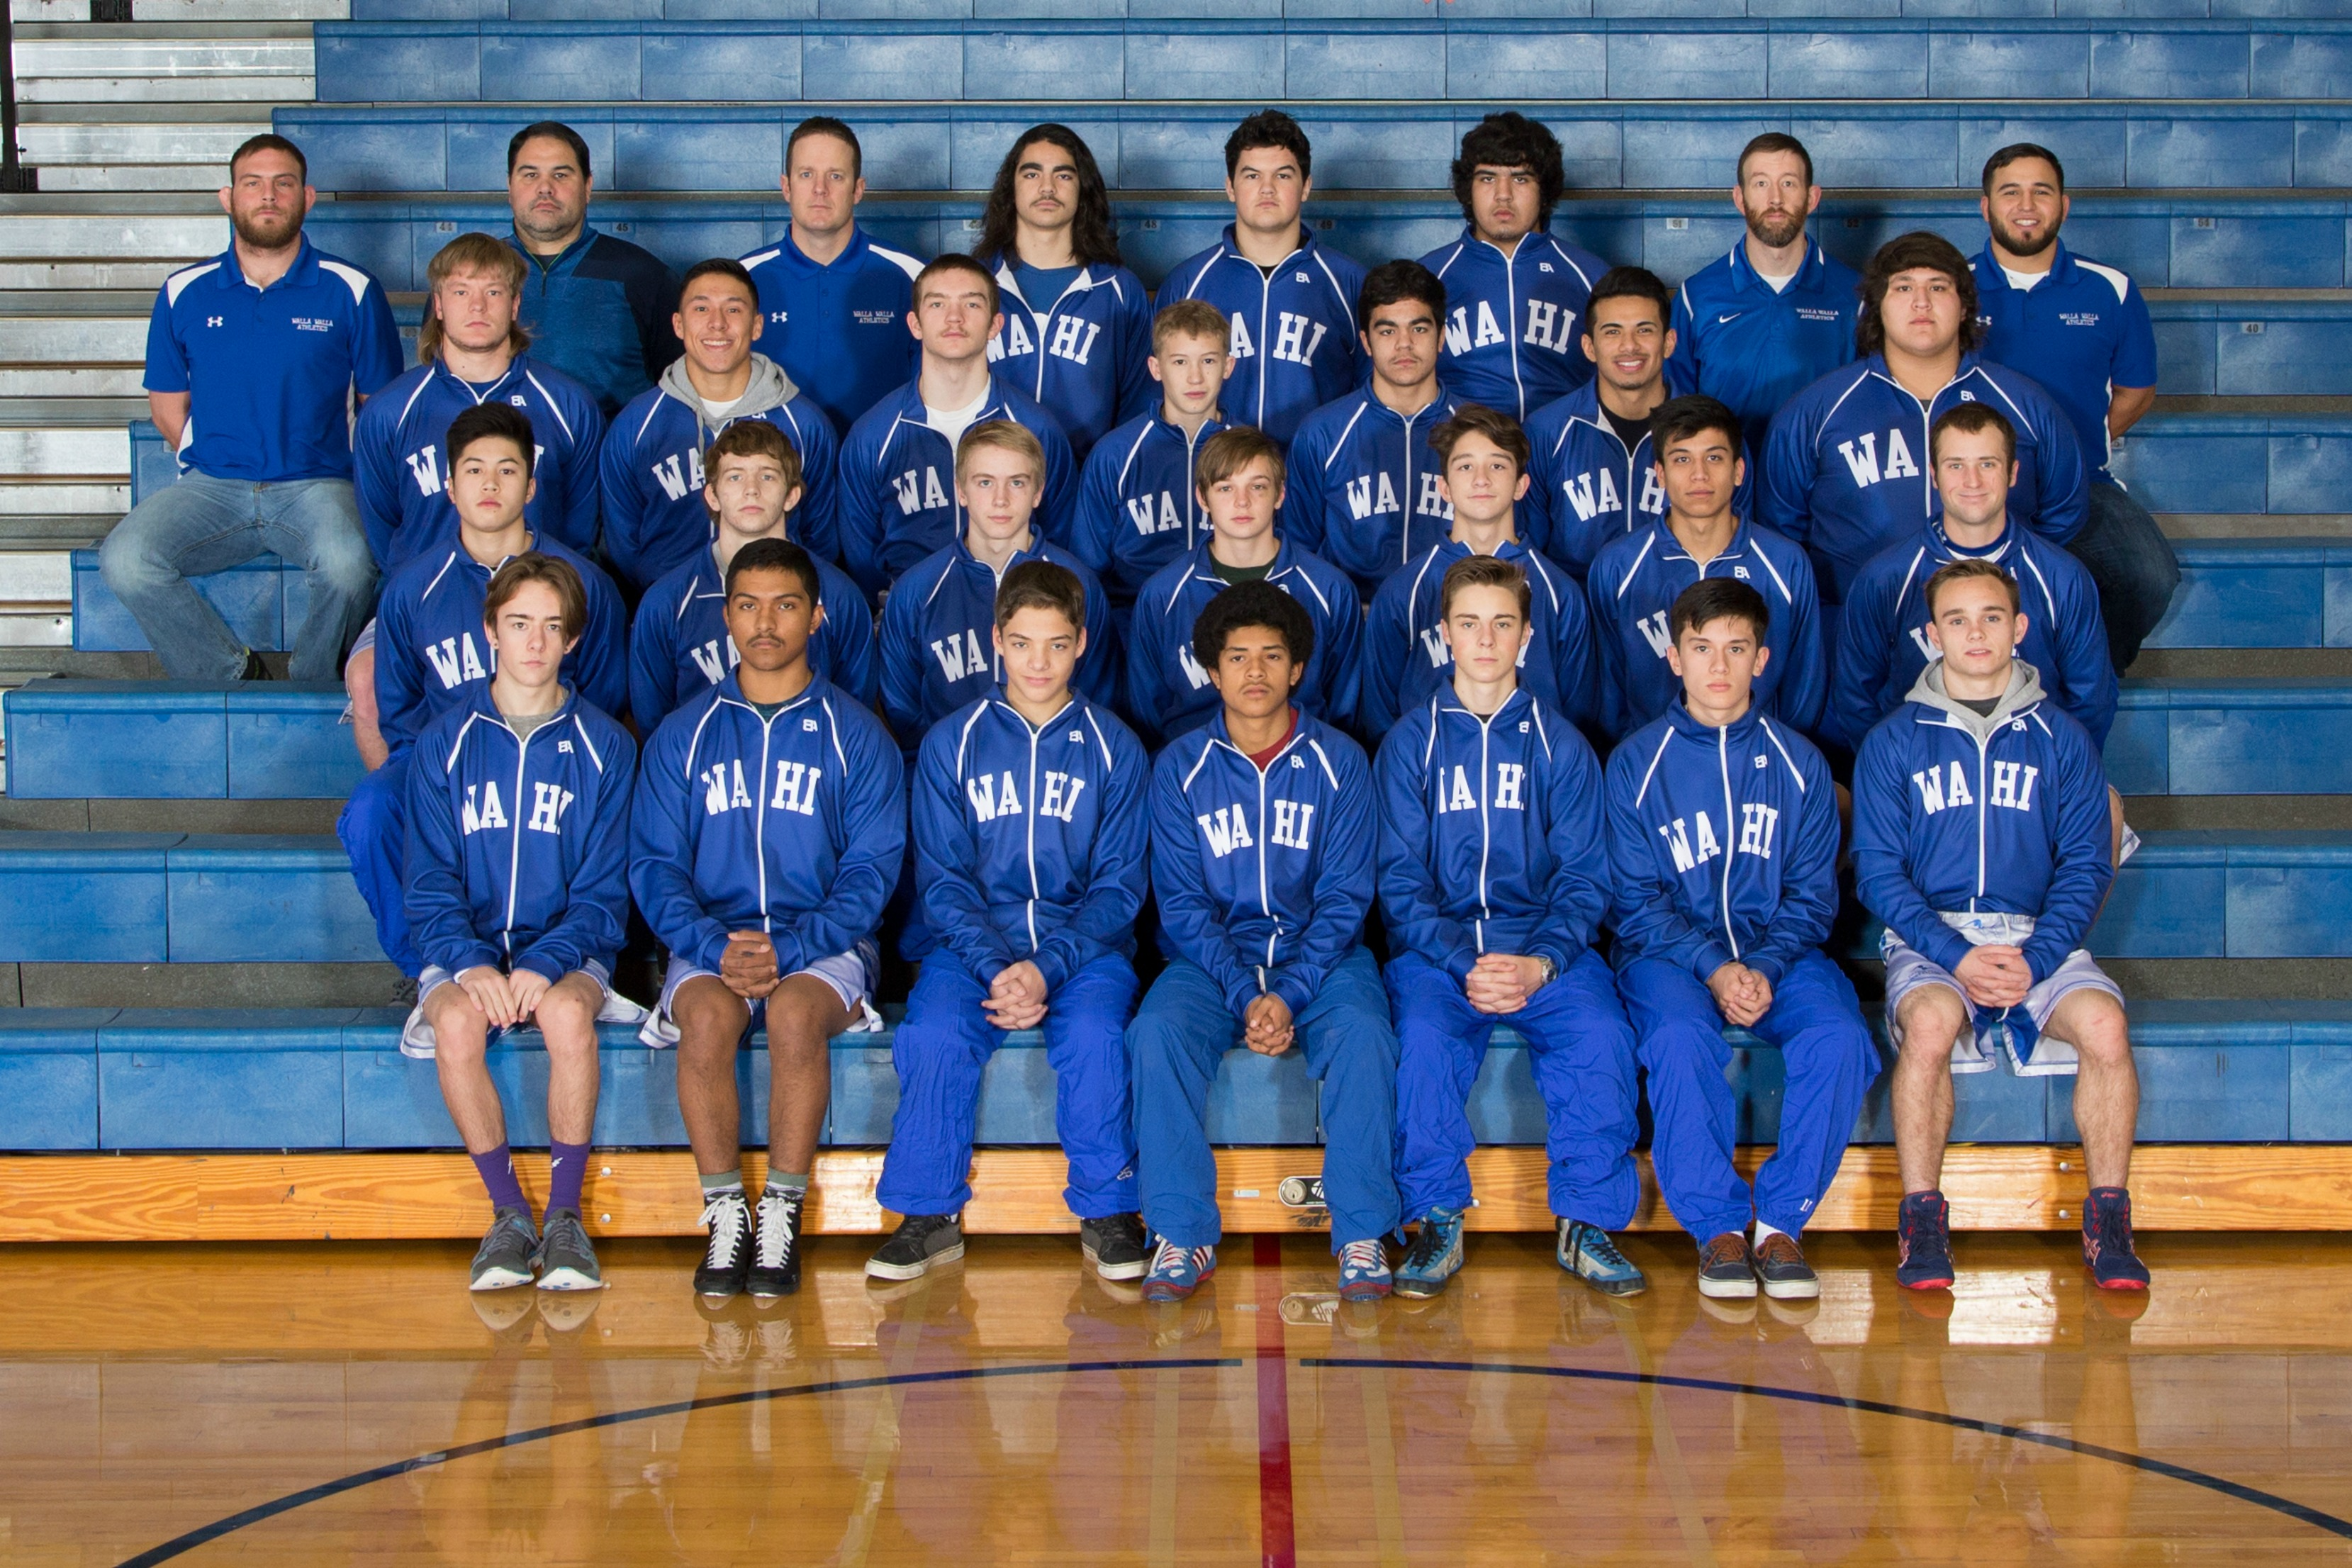 images/athletics/Wrestling/Wrestling_team_2016-2017.jpg